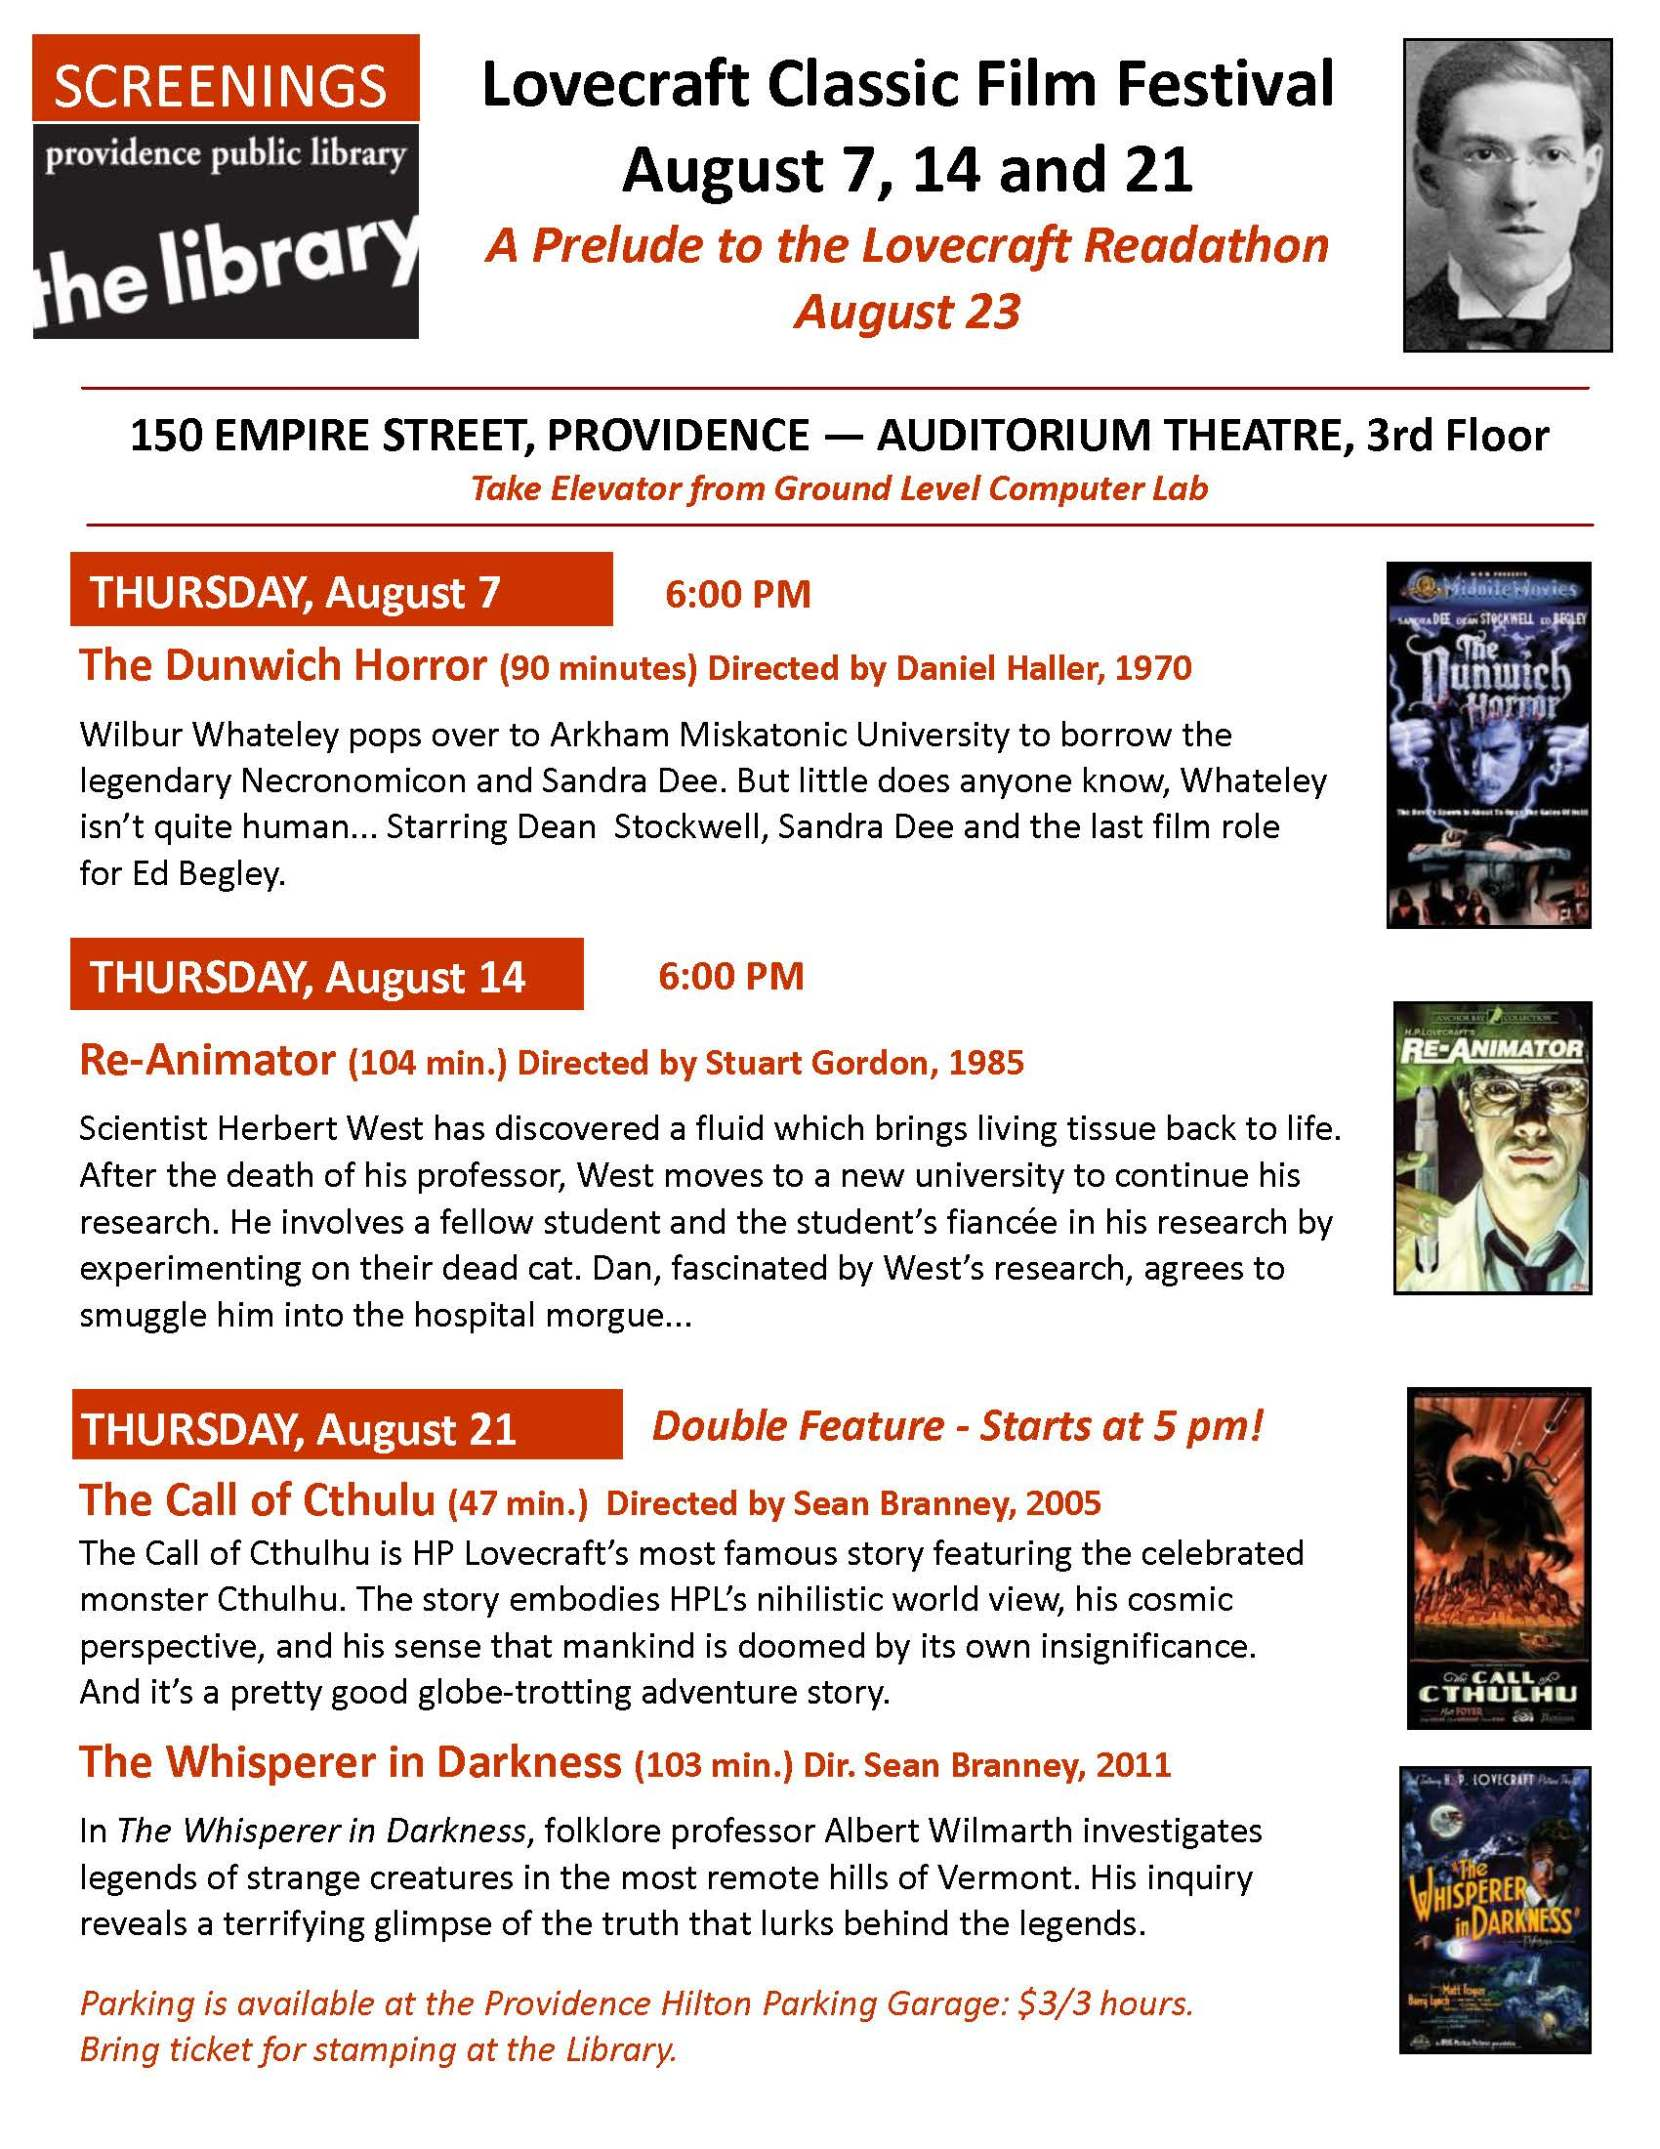 Lovecraft Film Festival8-14